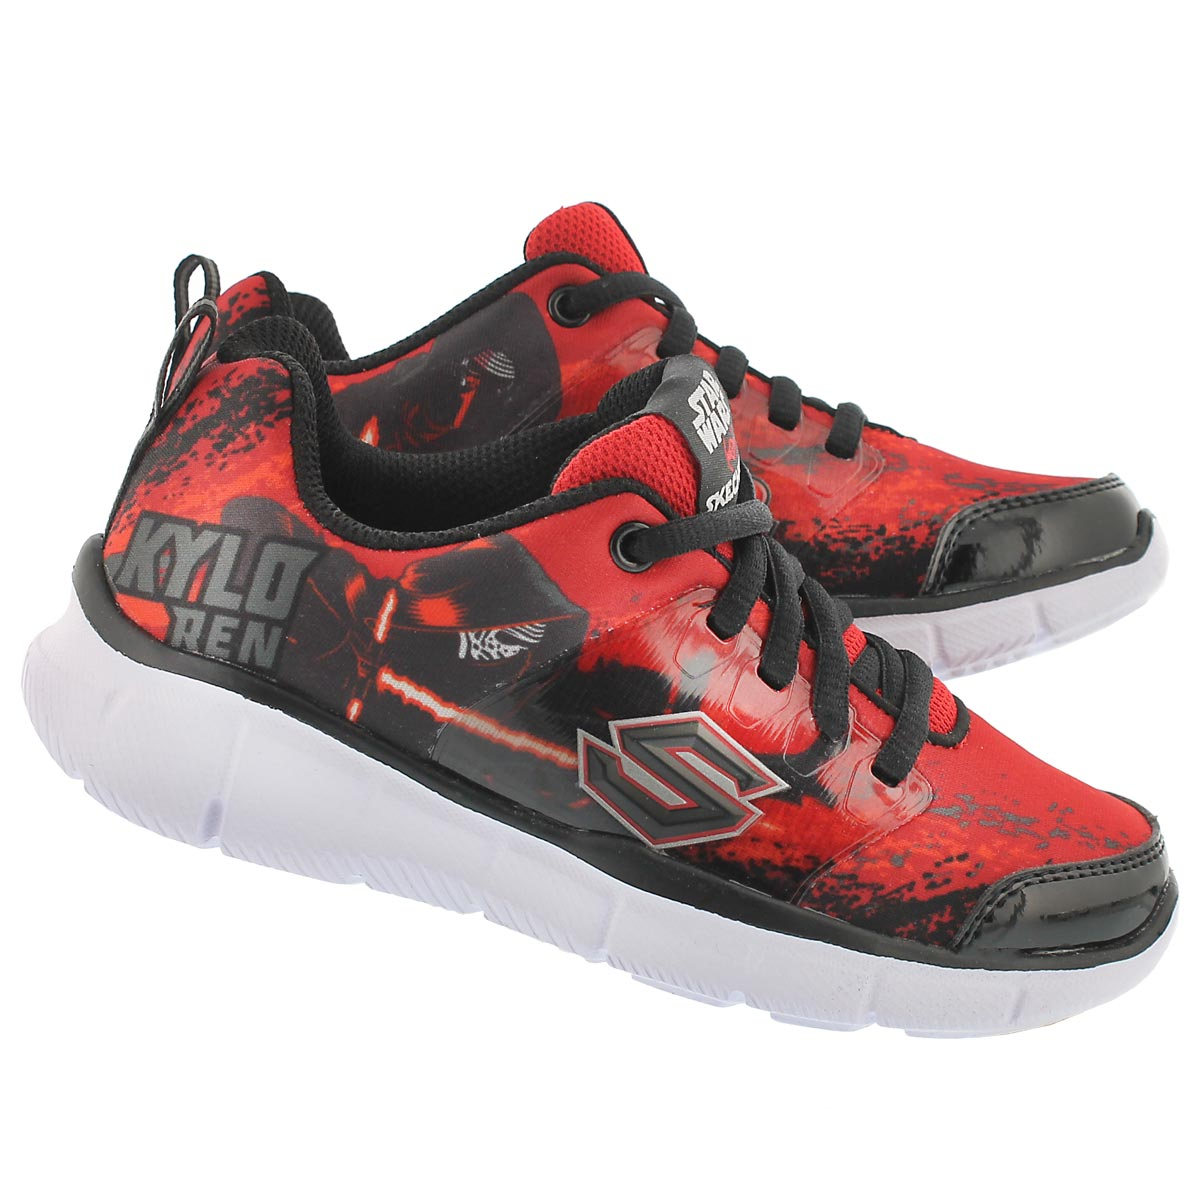 Bys Megasonic red/blk lace up sneaker